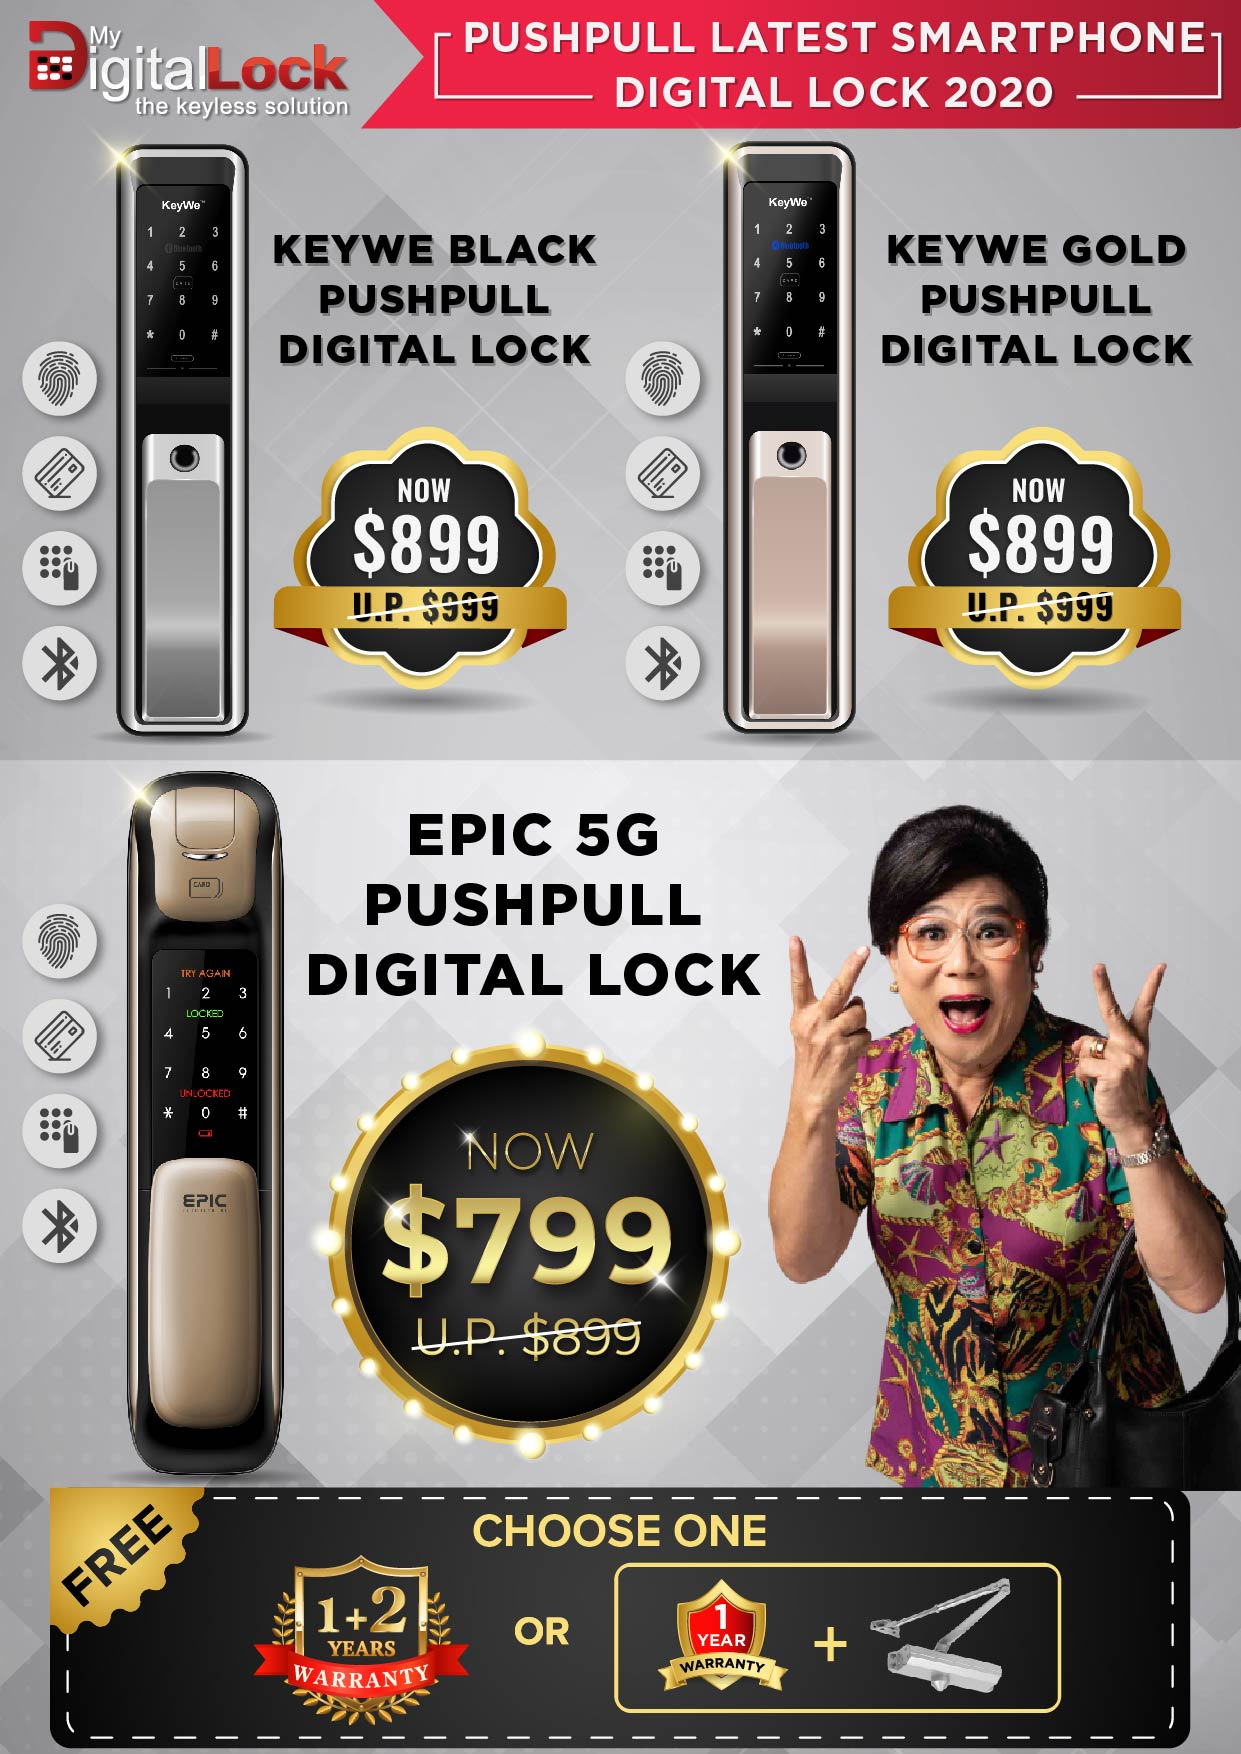 KeyWe and EPIC 5G Push Pull Digital Lock